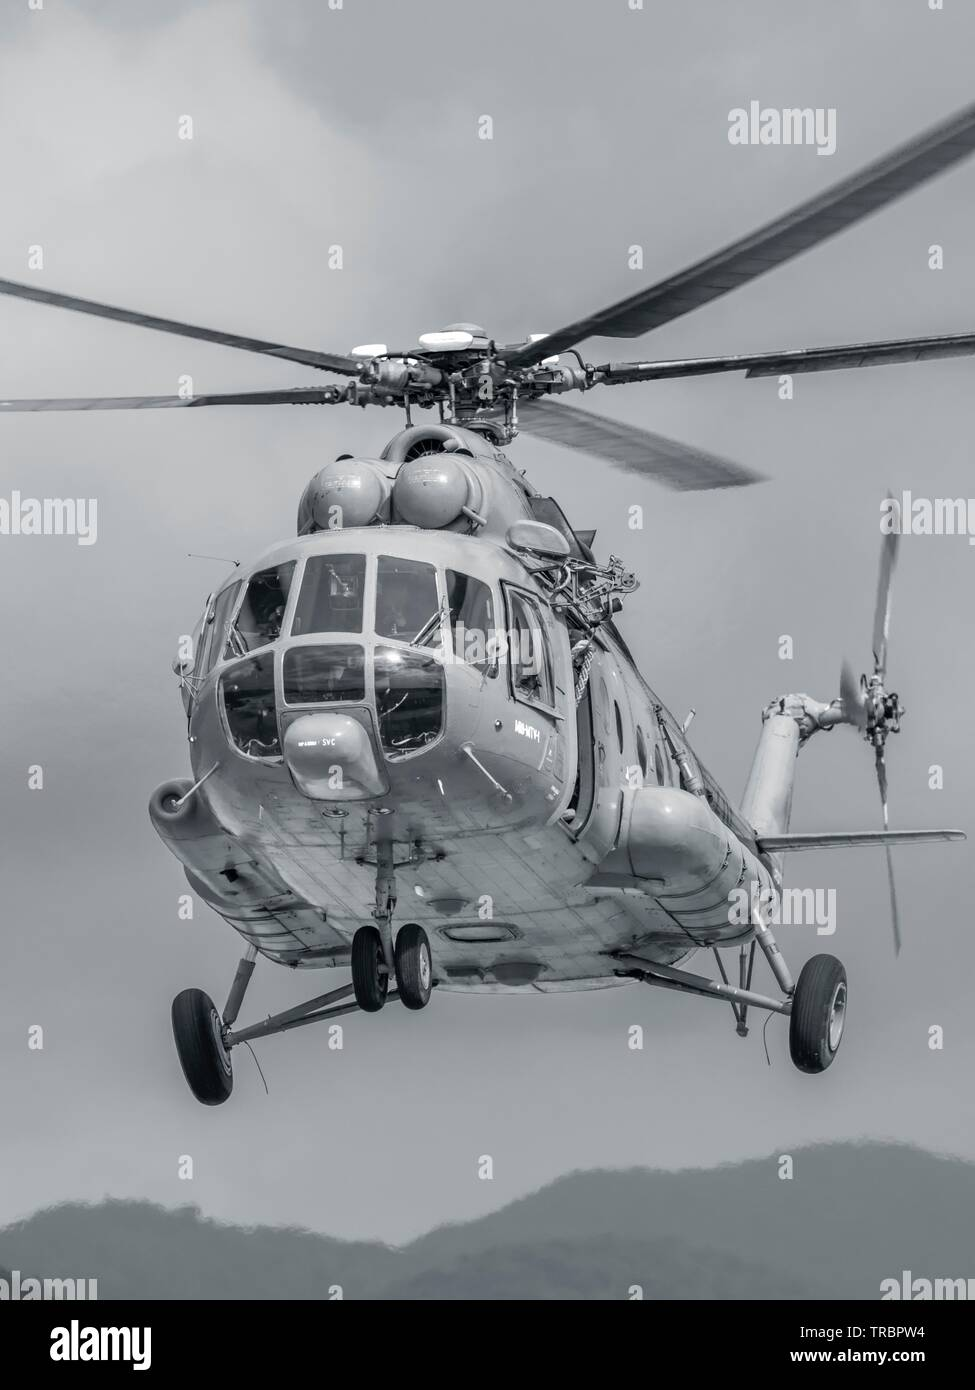 Croatian Air Force Mi-8 MTV-1 helicopter Stock Photo